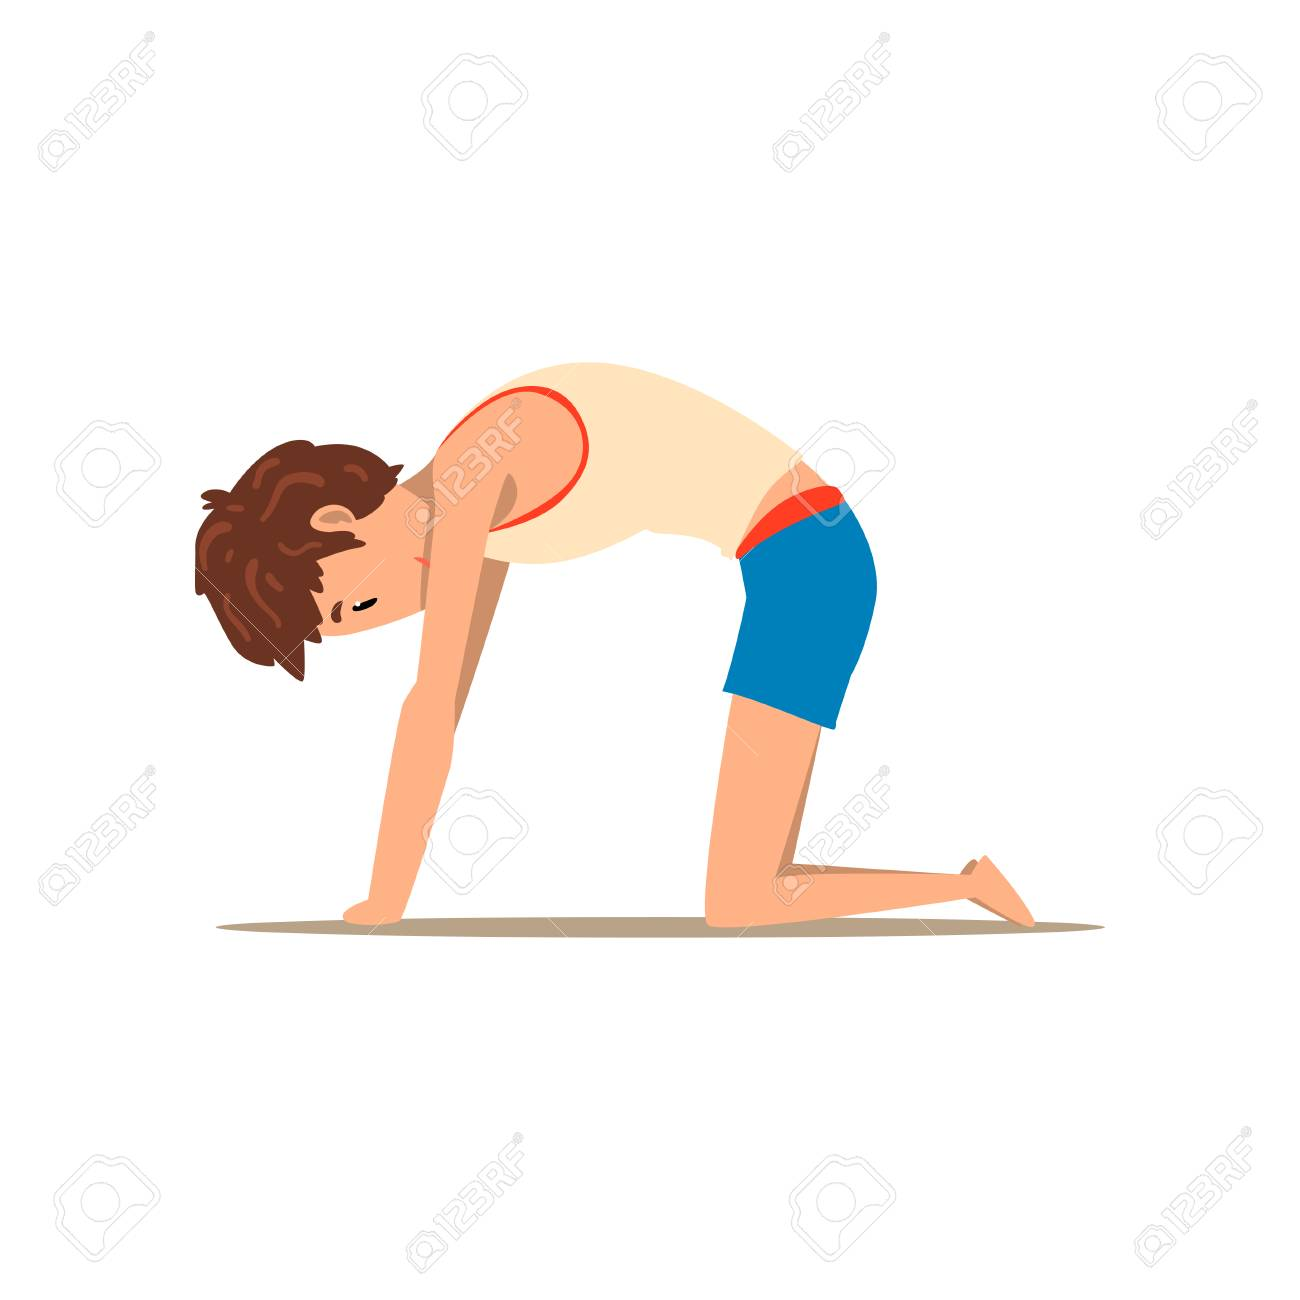 Boy In Cat Yoga Pose Marjaryasana Rehabilitation Exercise For Royalty Free Cliparts Vectors And Stock Illustration Image 99792680